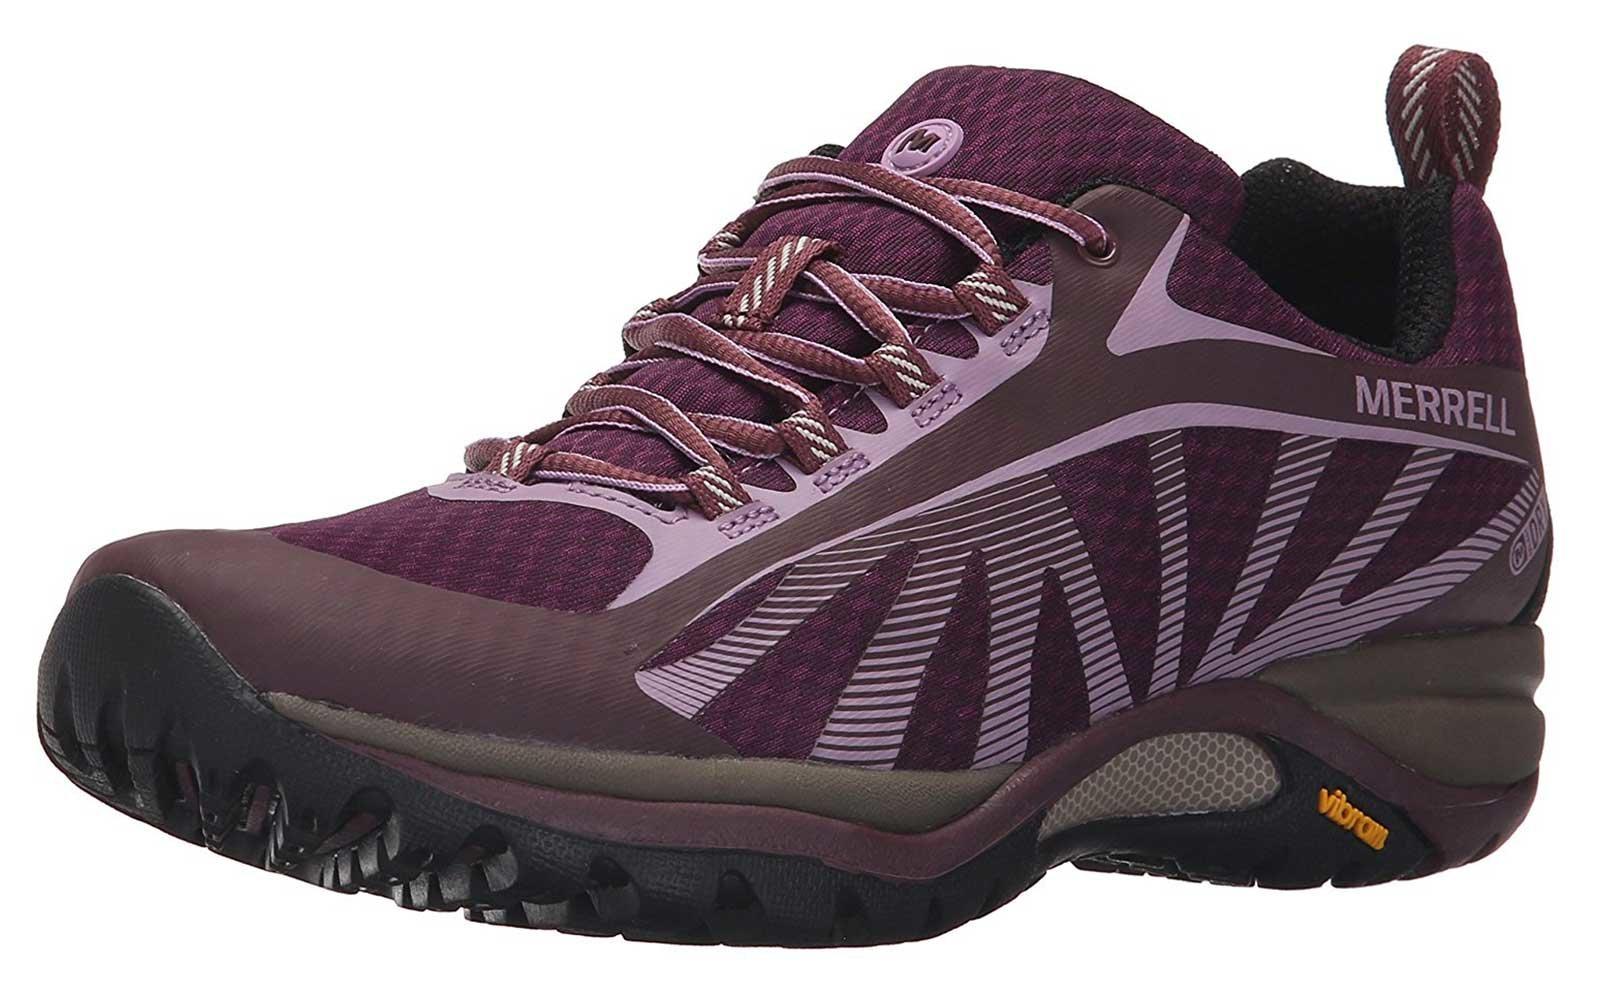 Merrell Hiking boots for Women